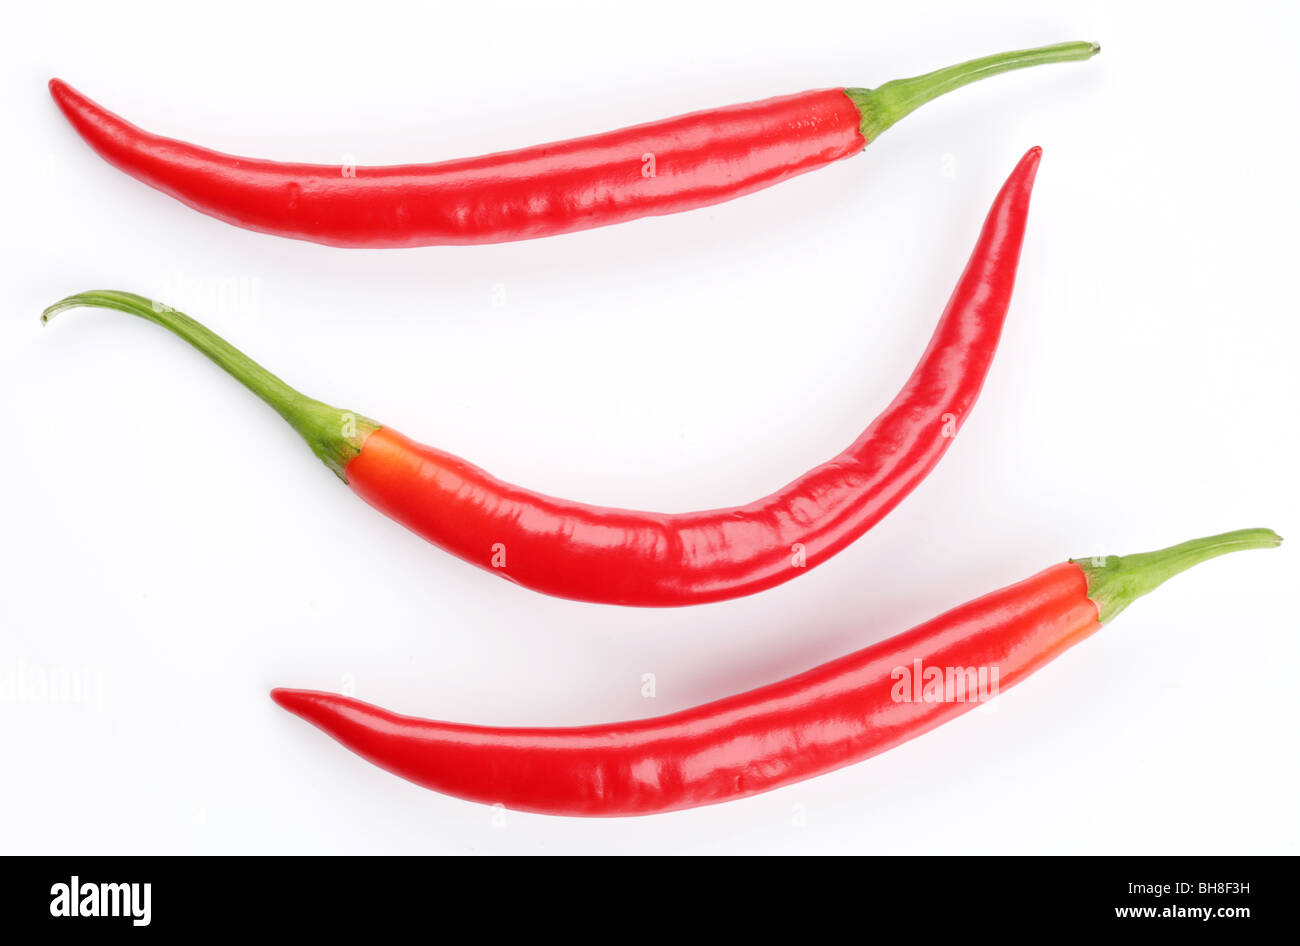 Pods spicy red chilli peppers on white background Stock Photo